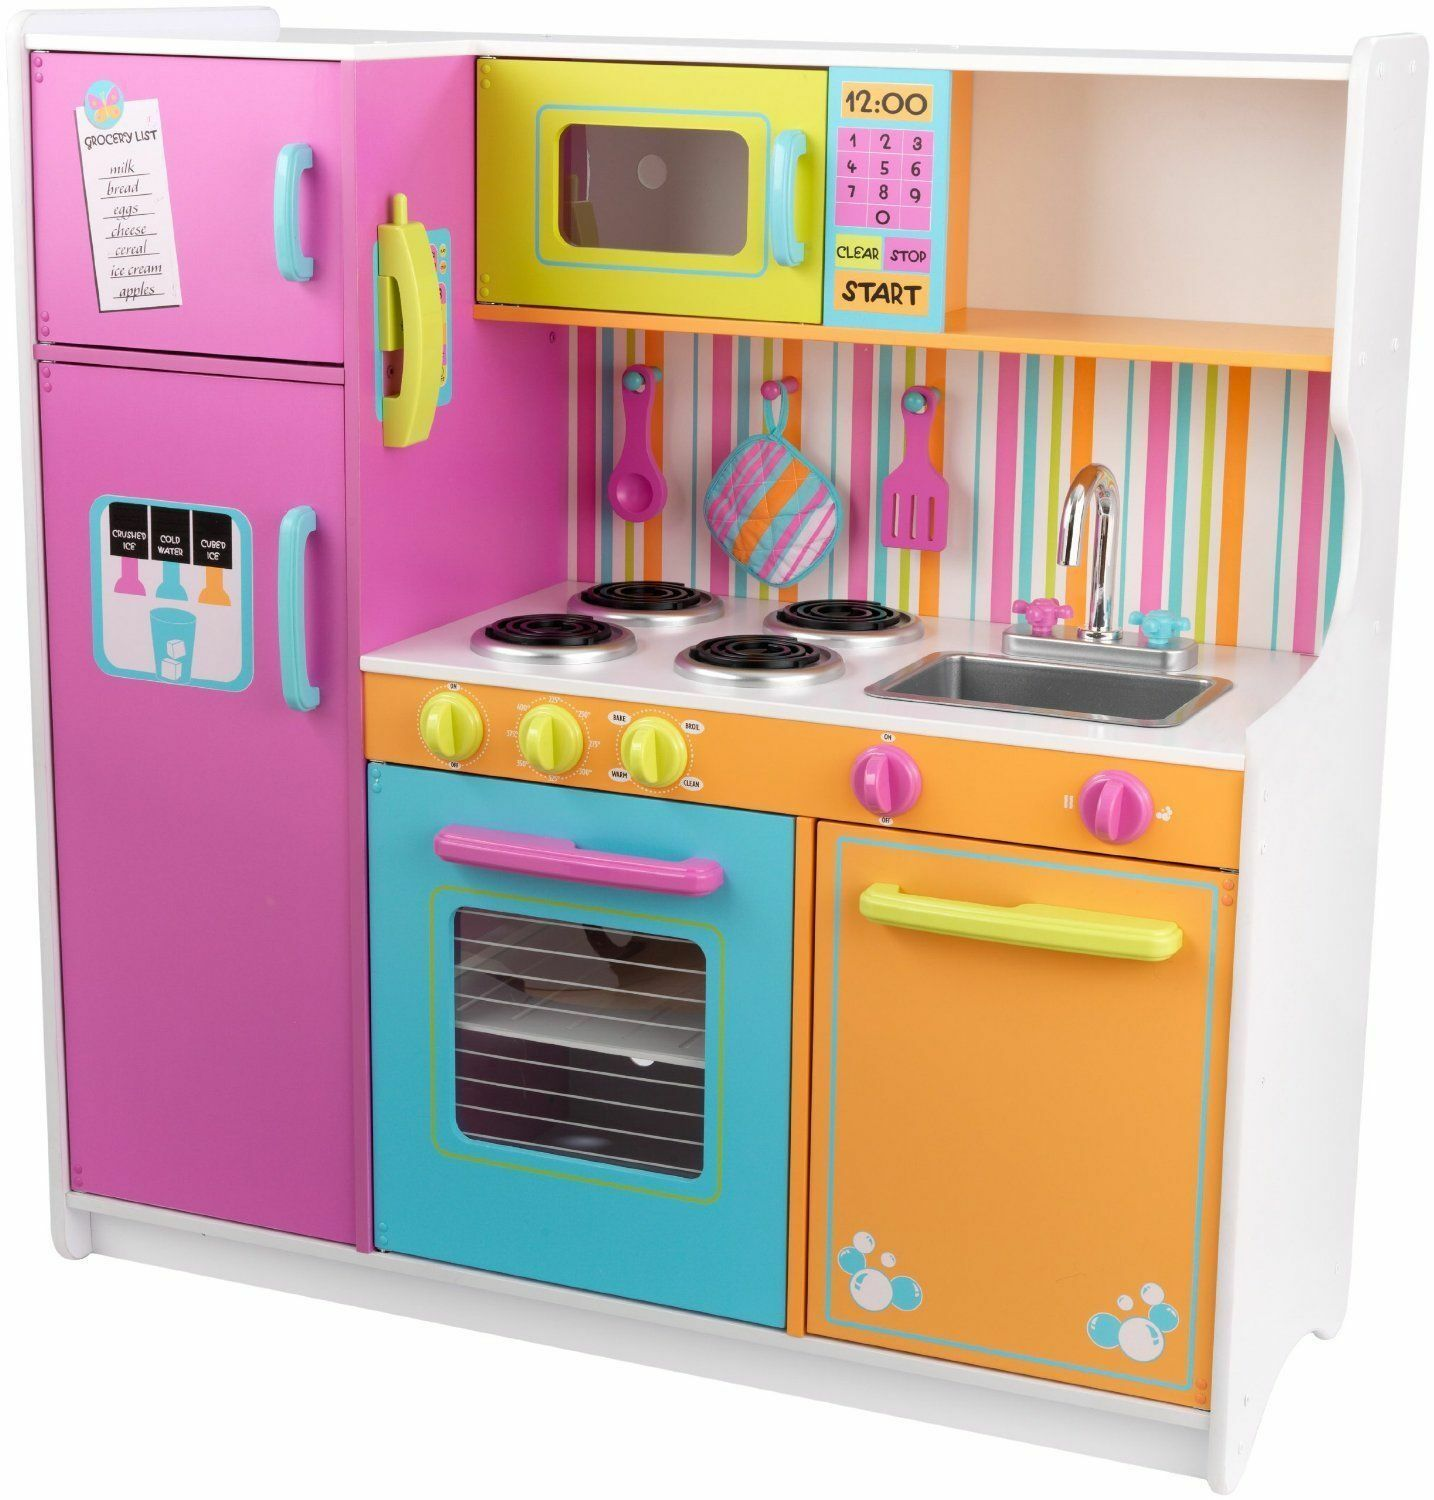 Children Kitchen Set: Top 10 Wooden Kitchens For Kids